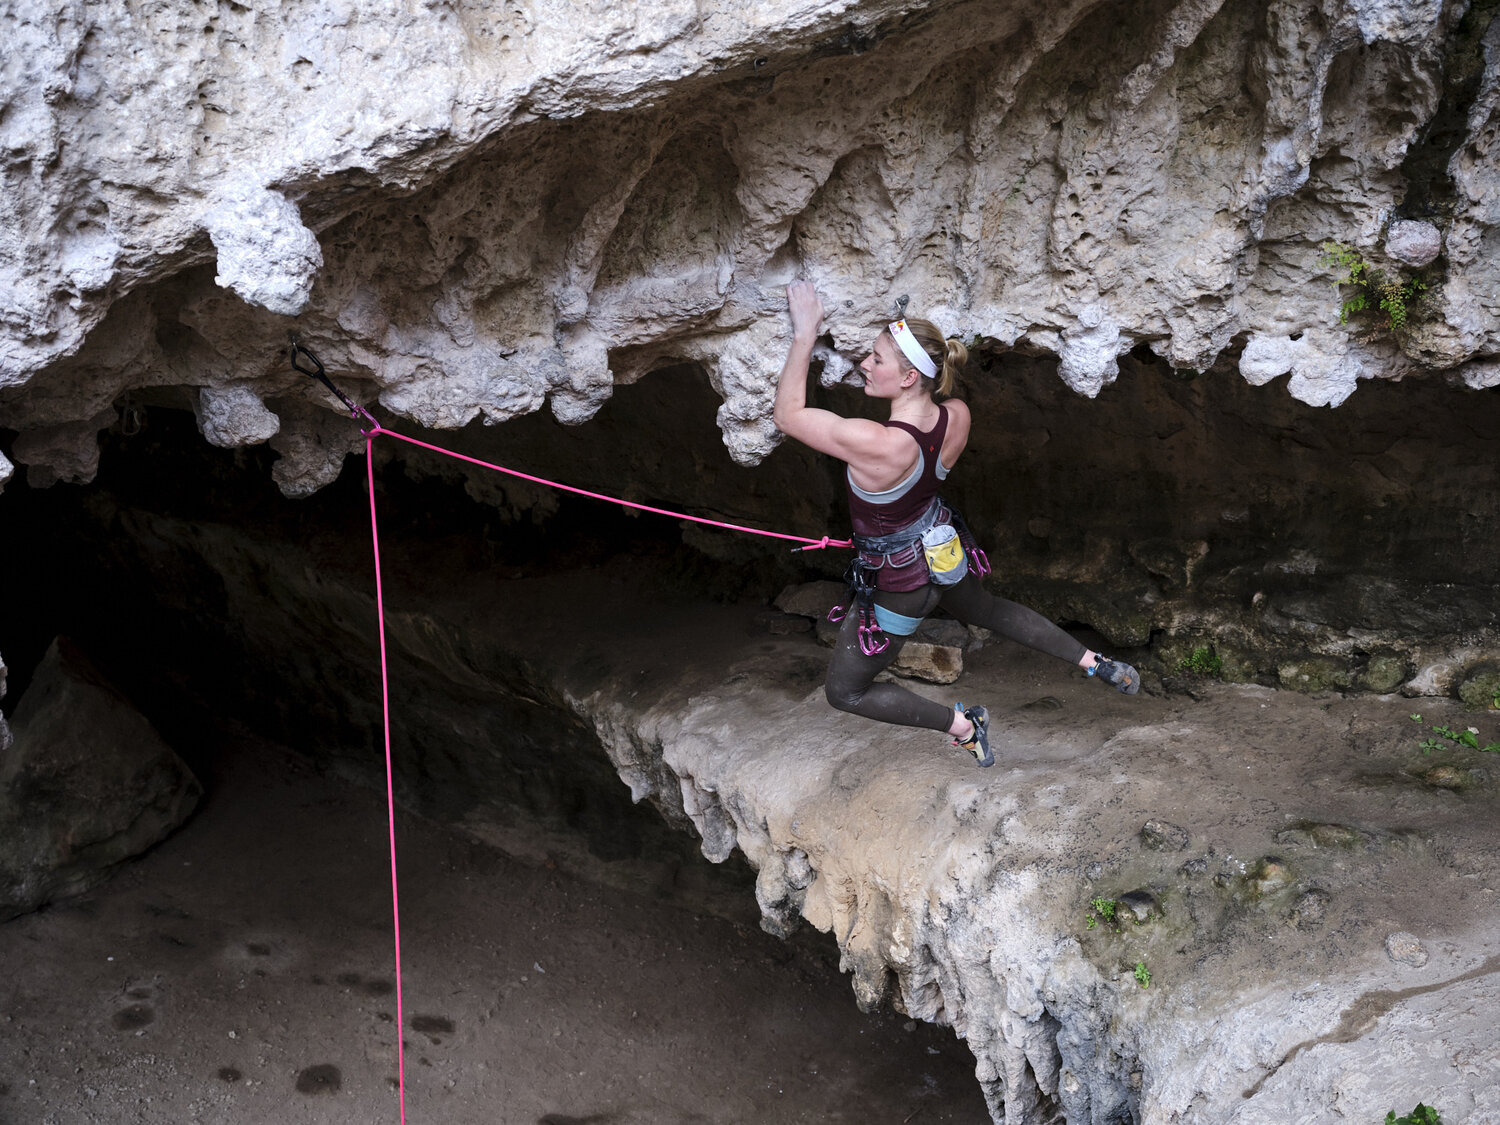 Red Bull athlete Claire Buhrfeind climbs.